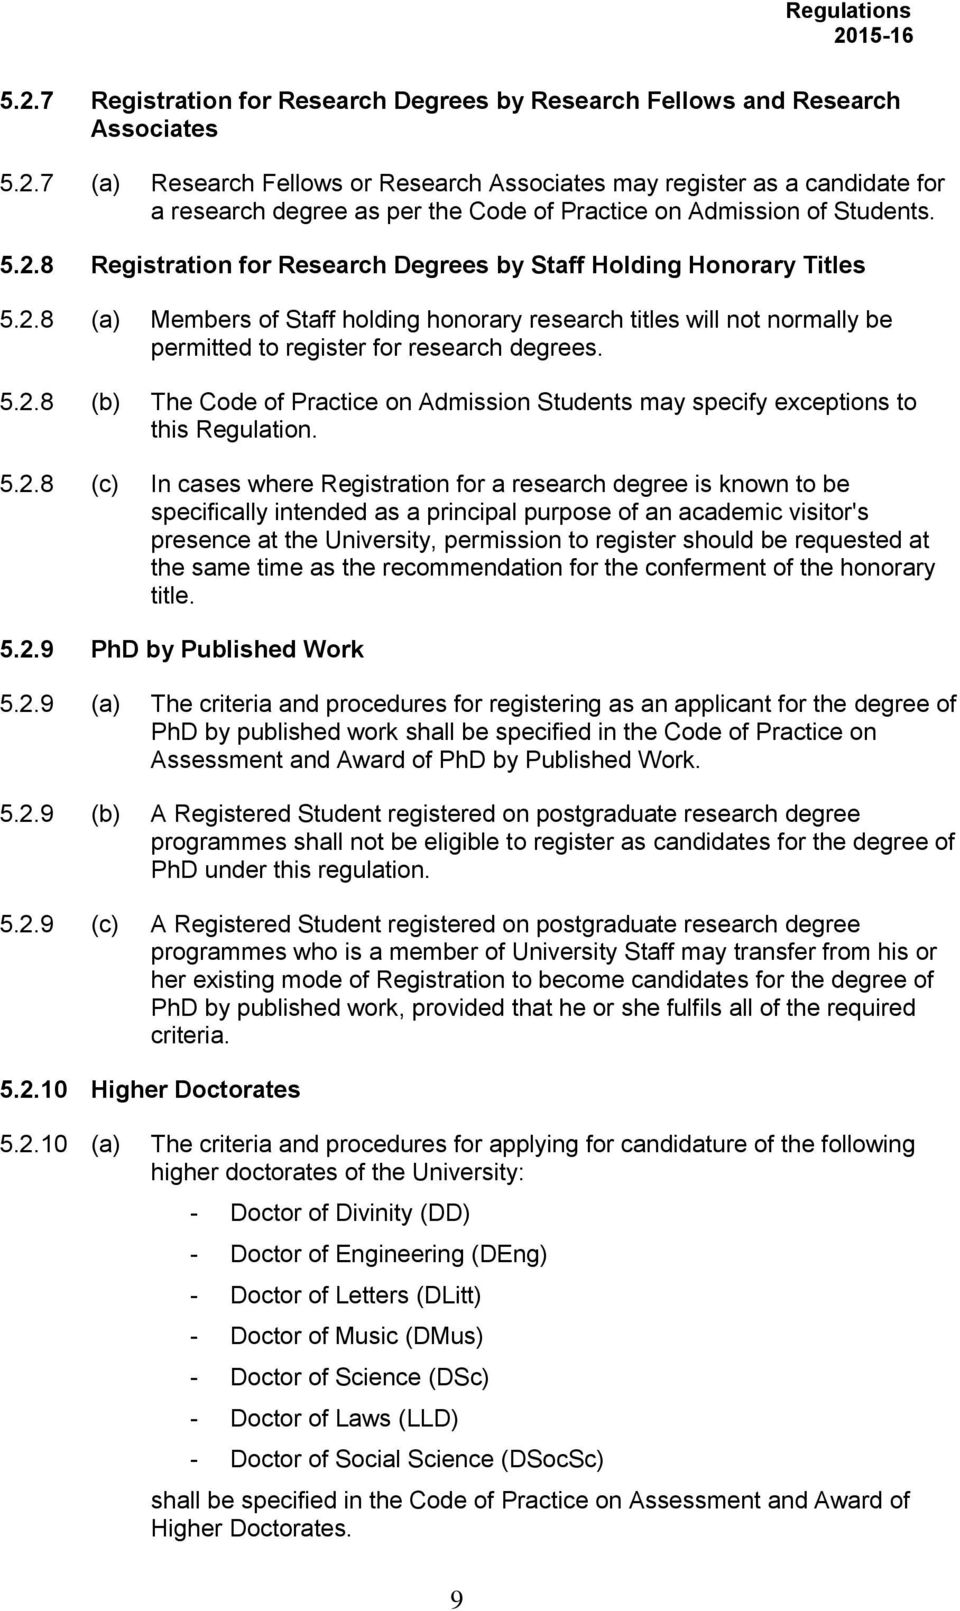 5.2.8 (c) In cases where Registration for a research degree is known to be specifically intended as a principal purpose of an academic visitor's presence at the University, permission to register